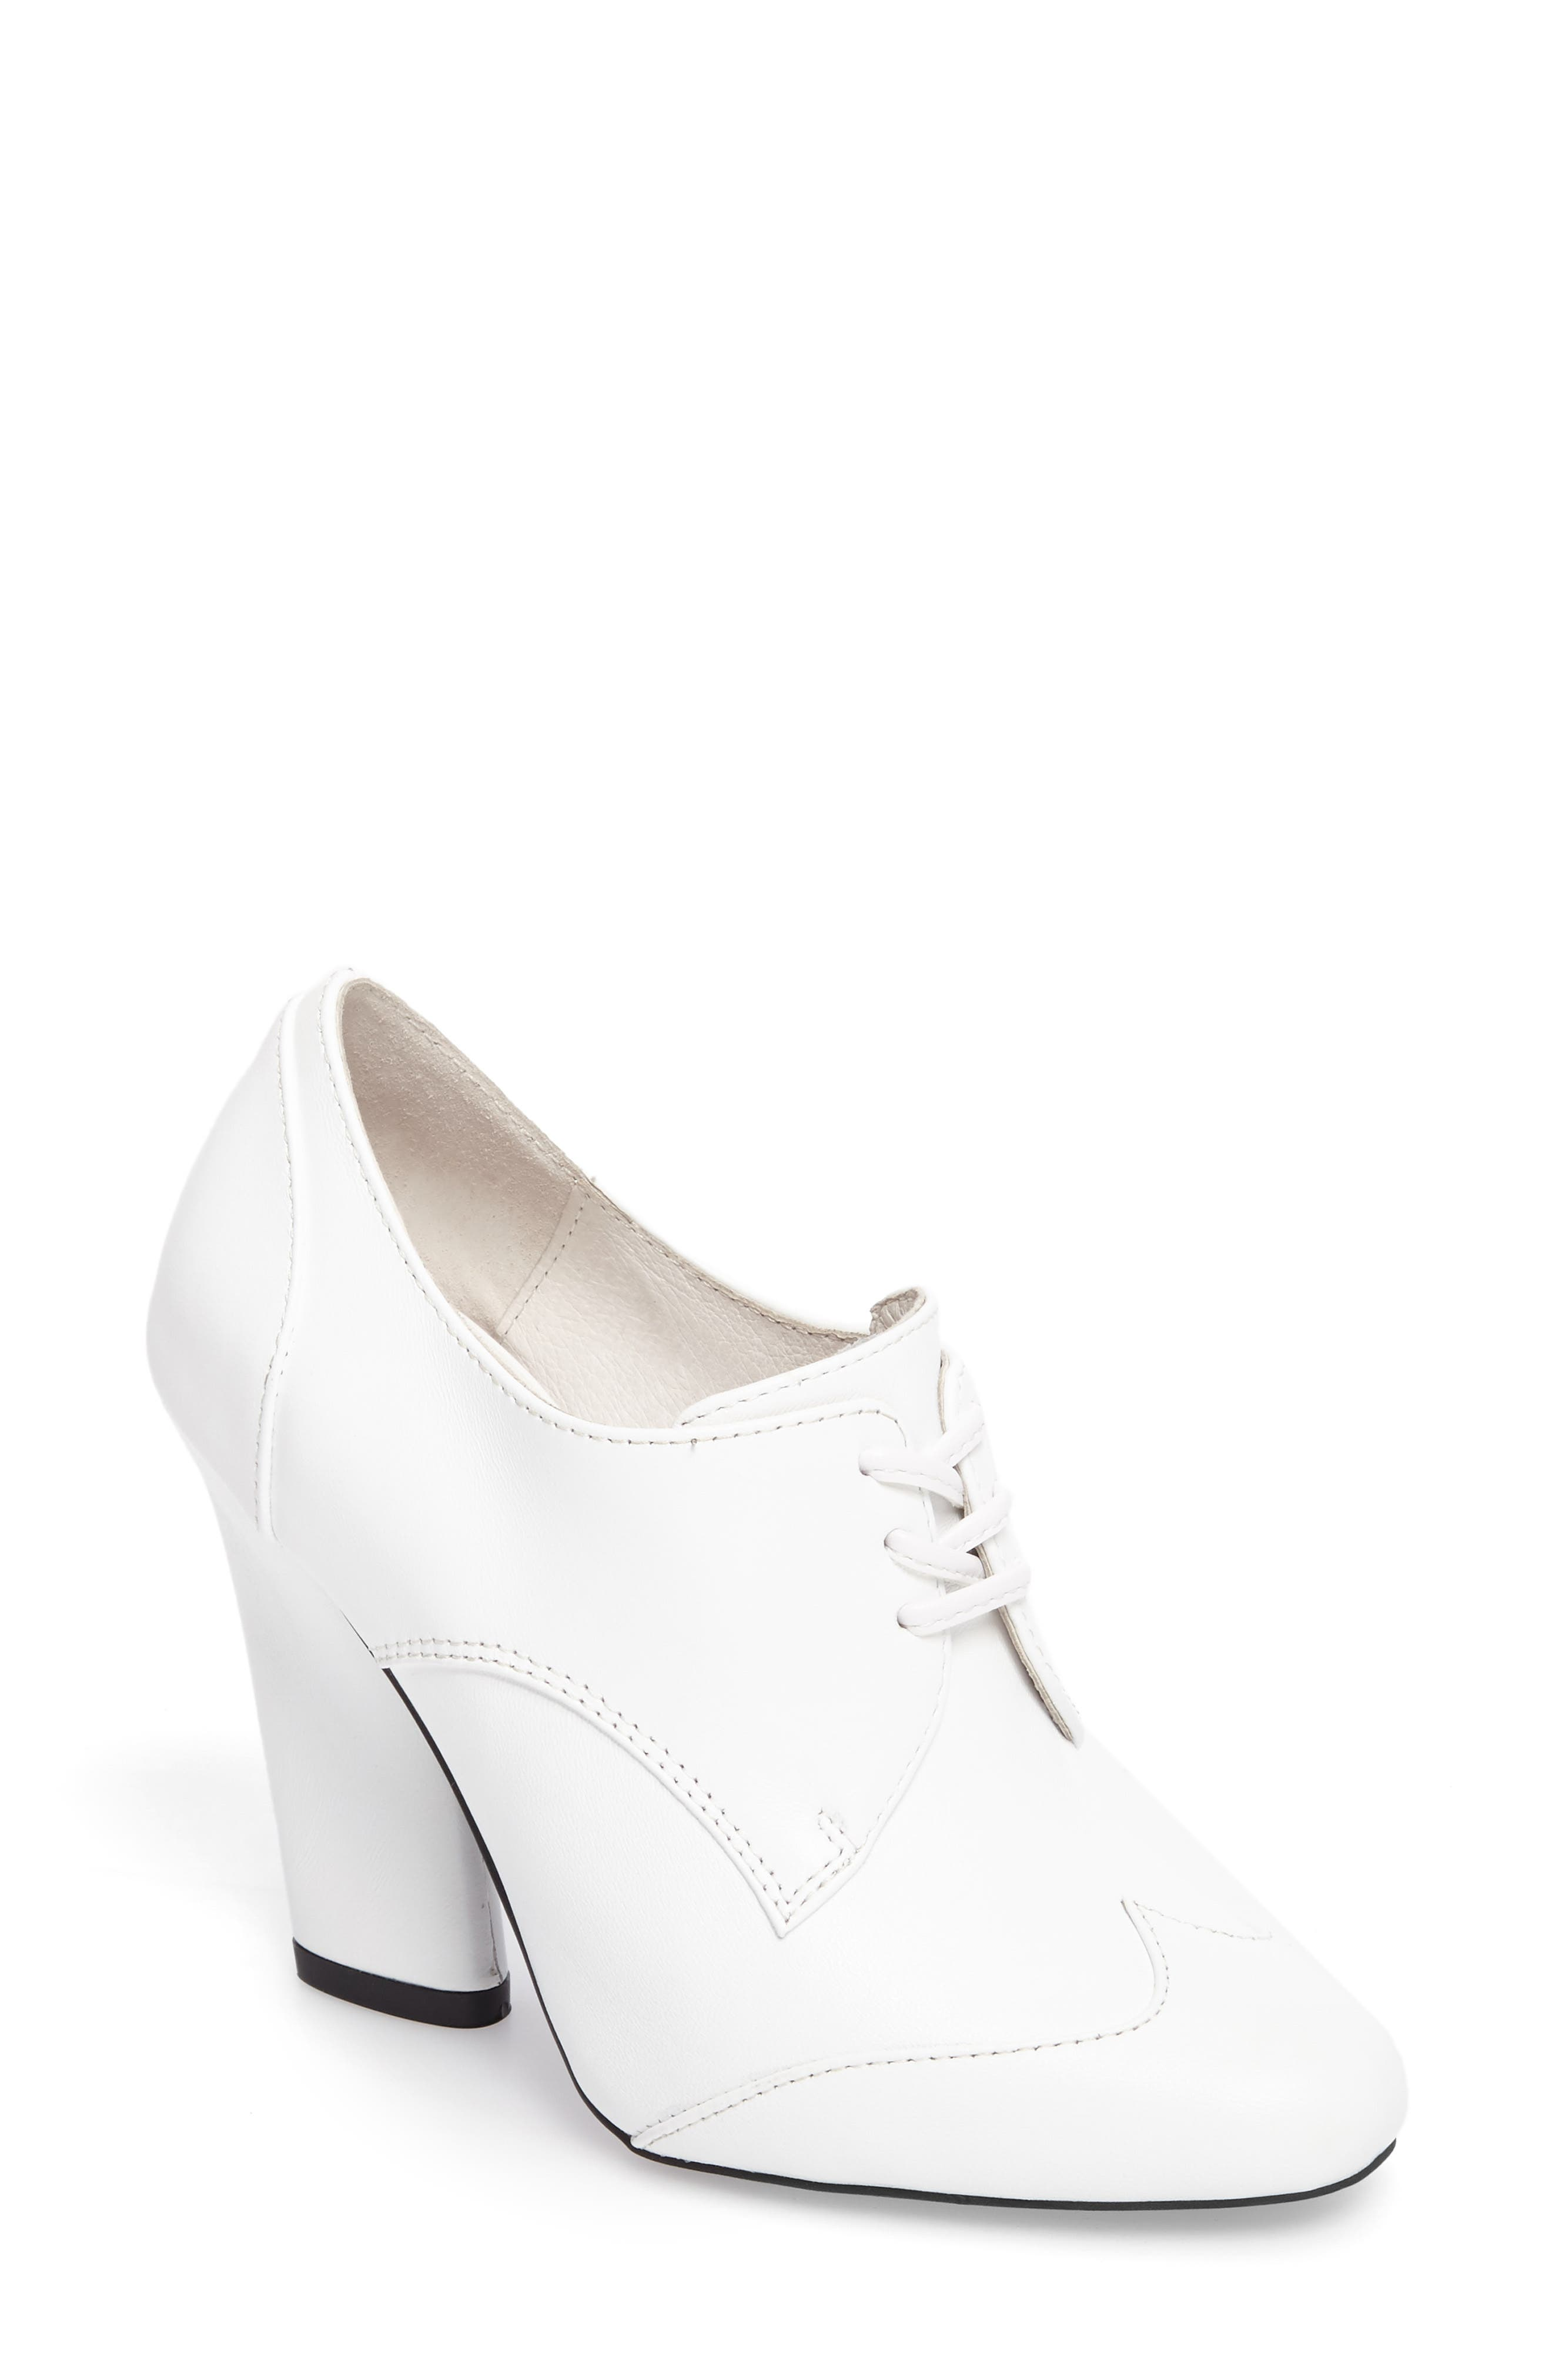 Alternate Image 1 Selected - Jeffrey Campbell Whitley Oxford Pump